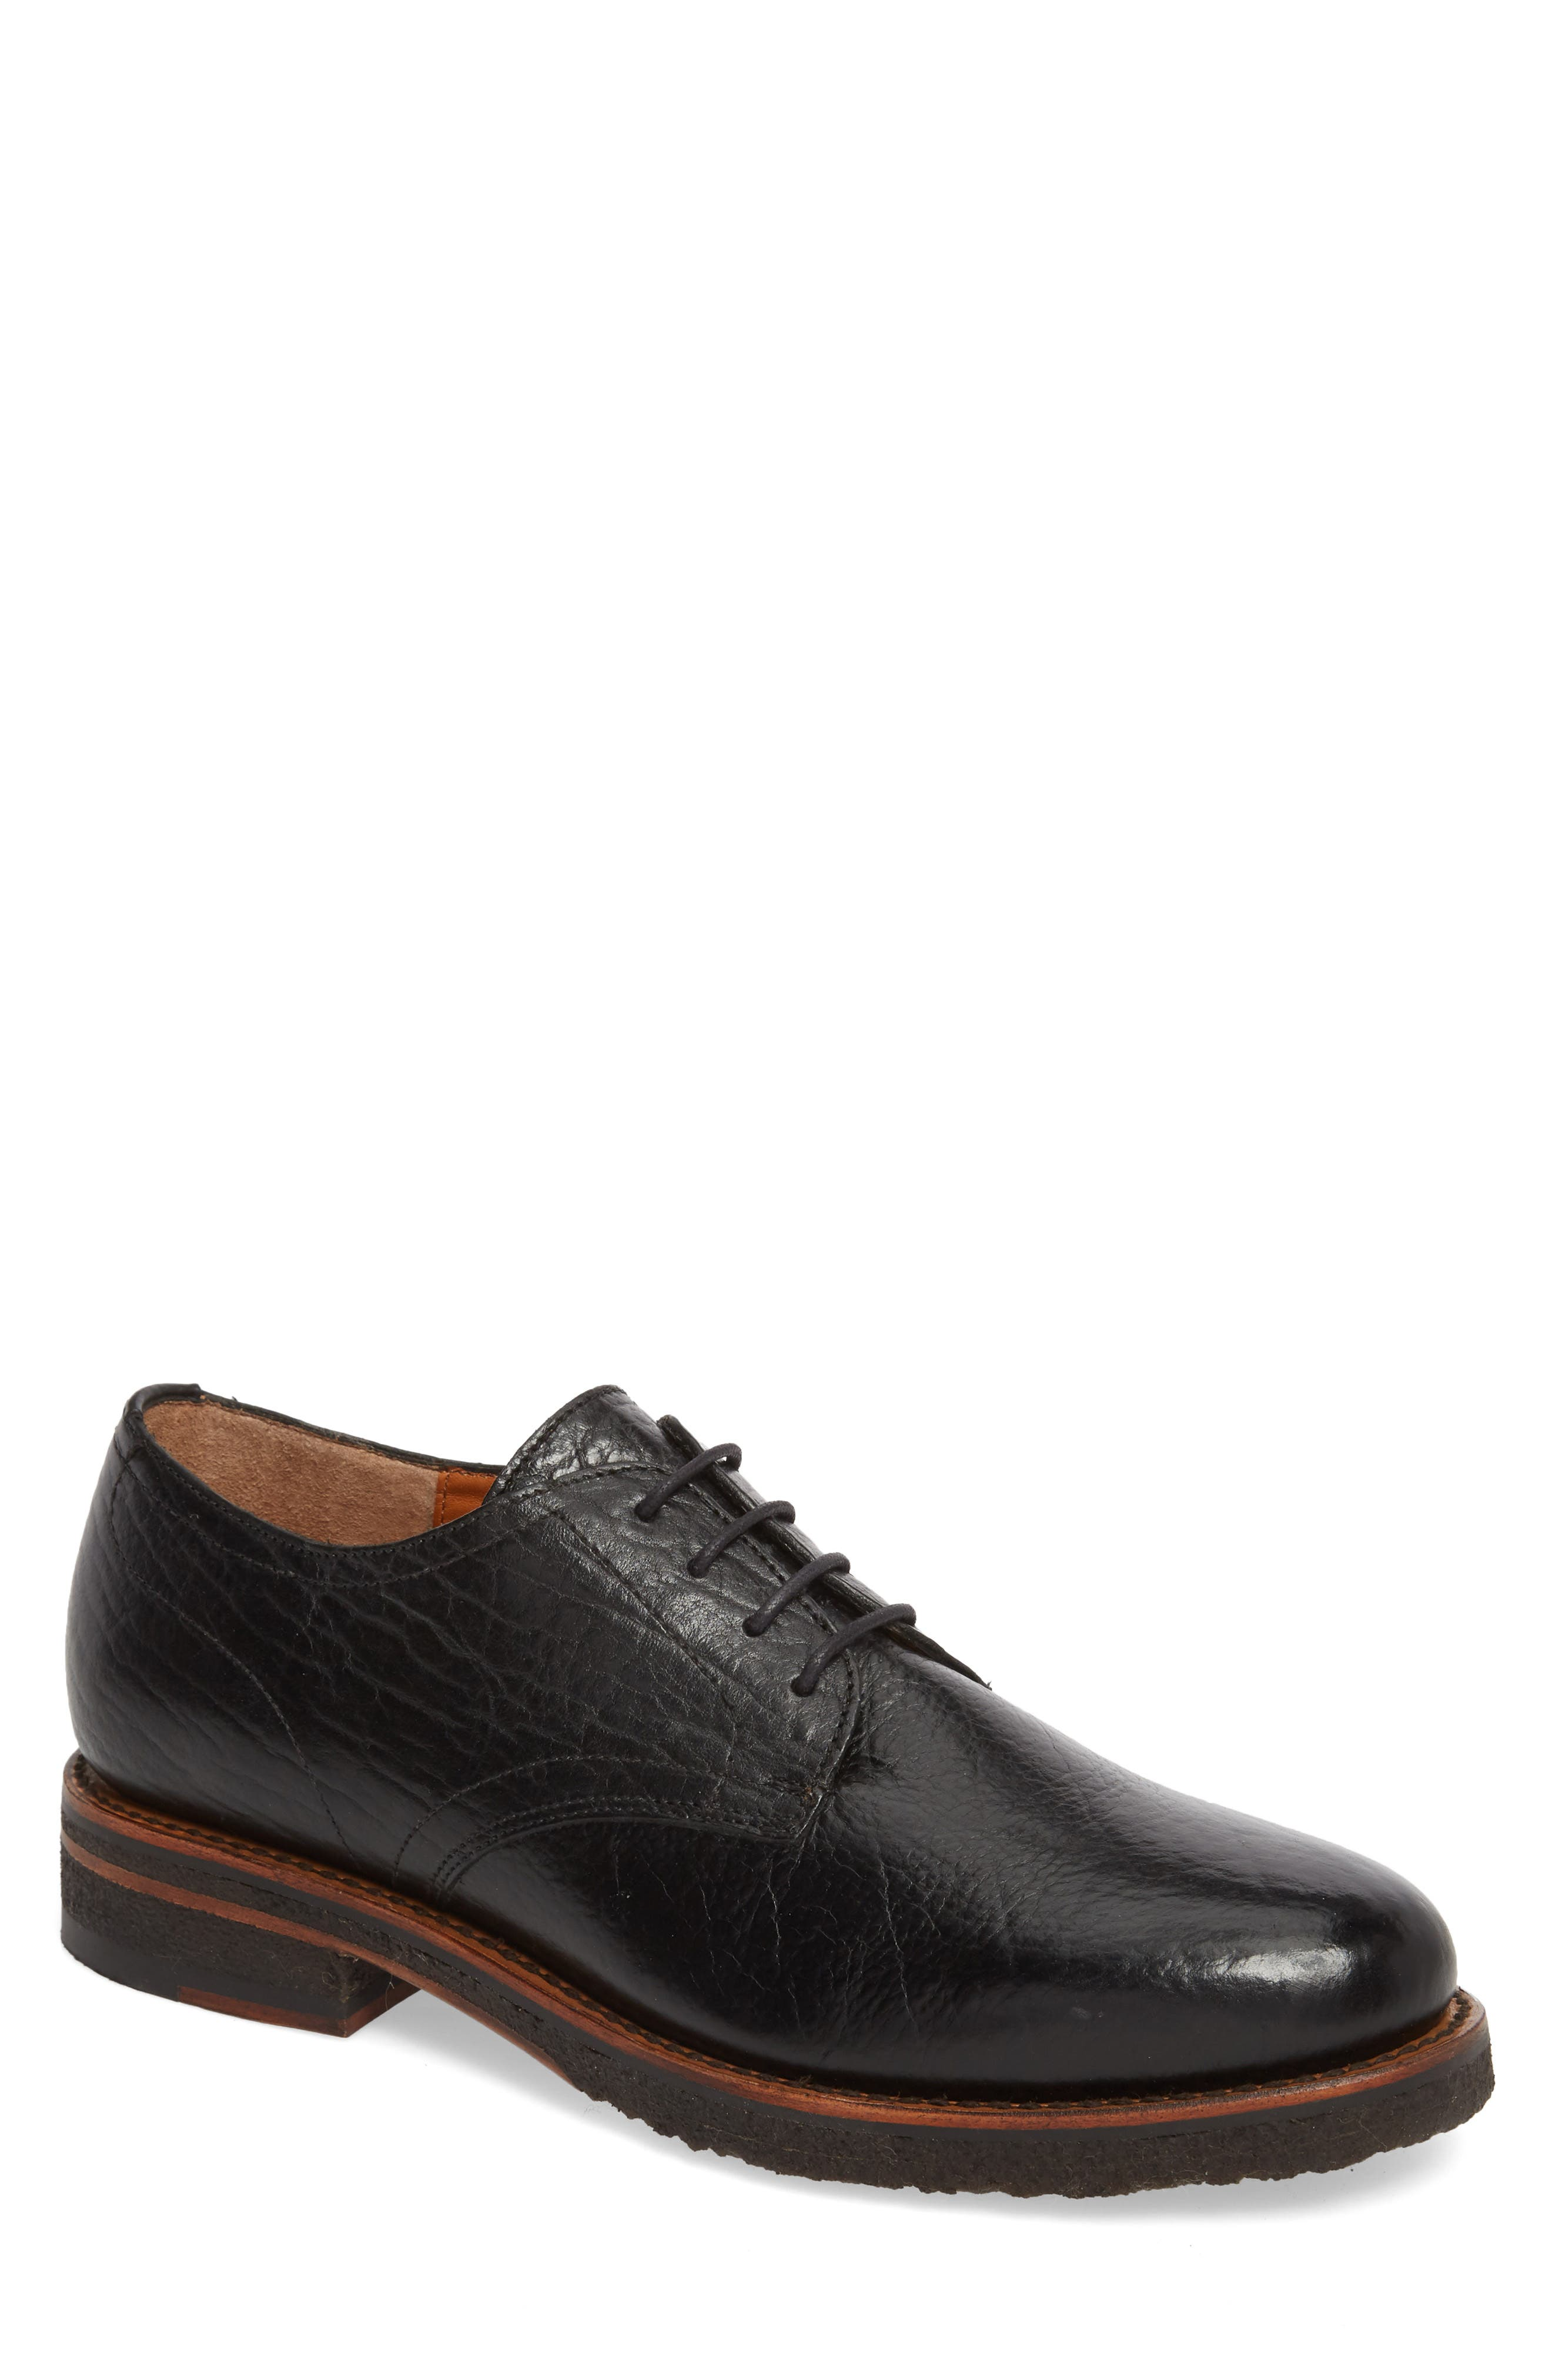 Two24 by Ariat Hawthorne Plain Toe Derby,                         Main,                         color, Black Leather